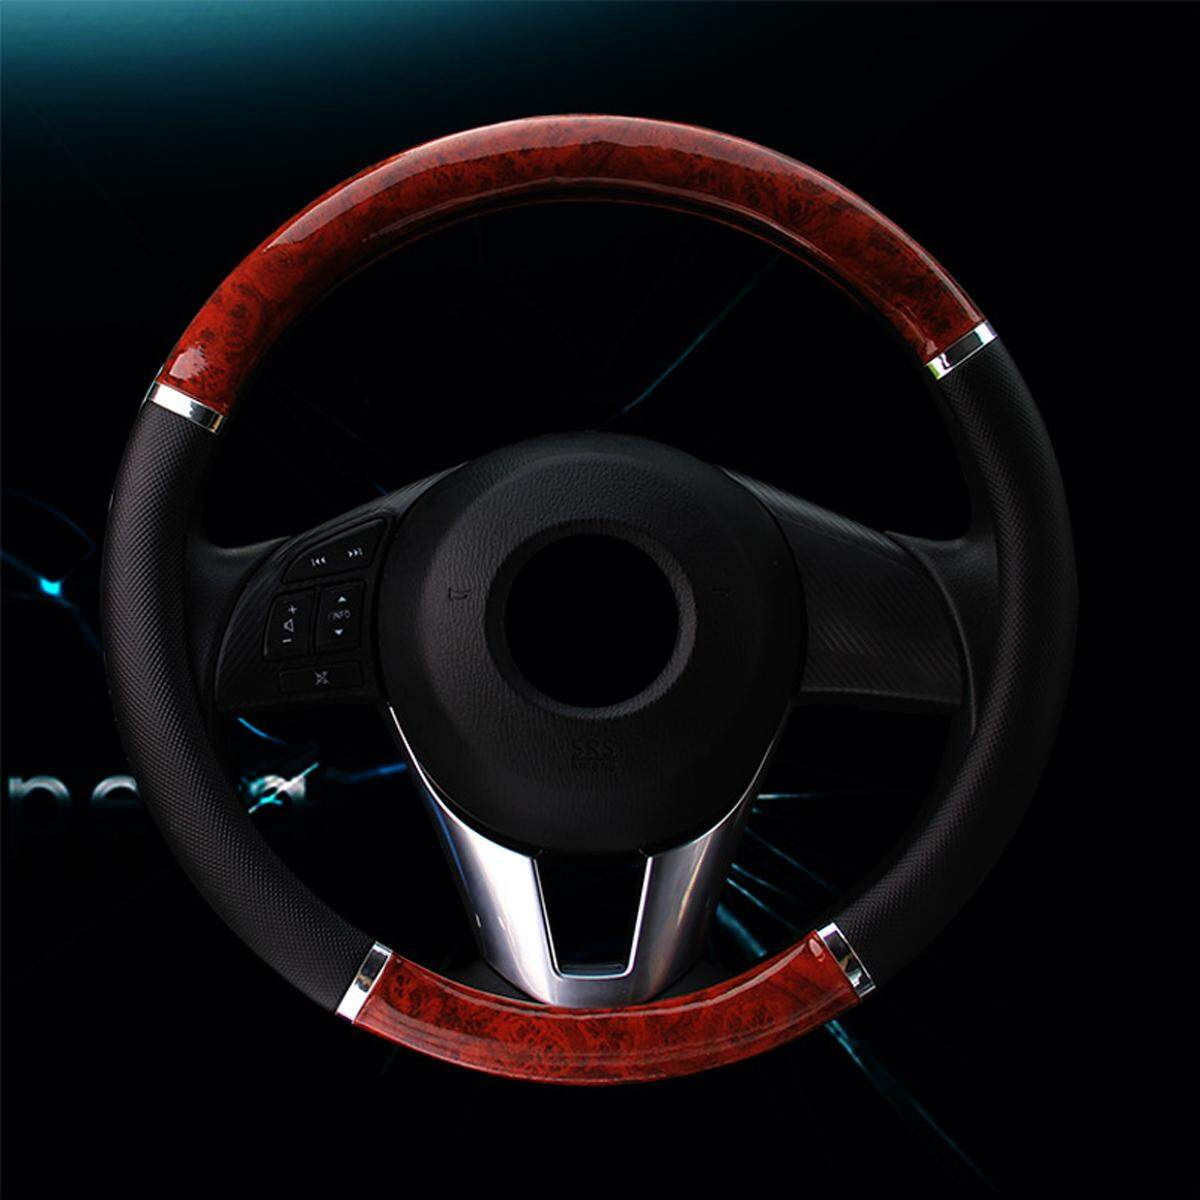 Luxury Auto Car Steering Wheel Cover Mahogany Wood With Pu Leather Car Cover By Moonbeam.